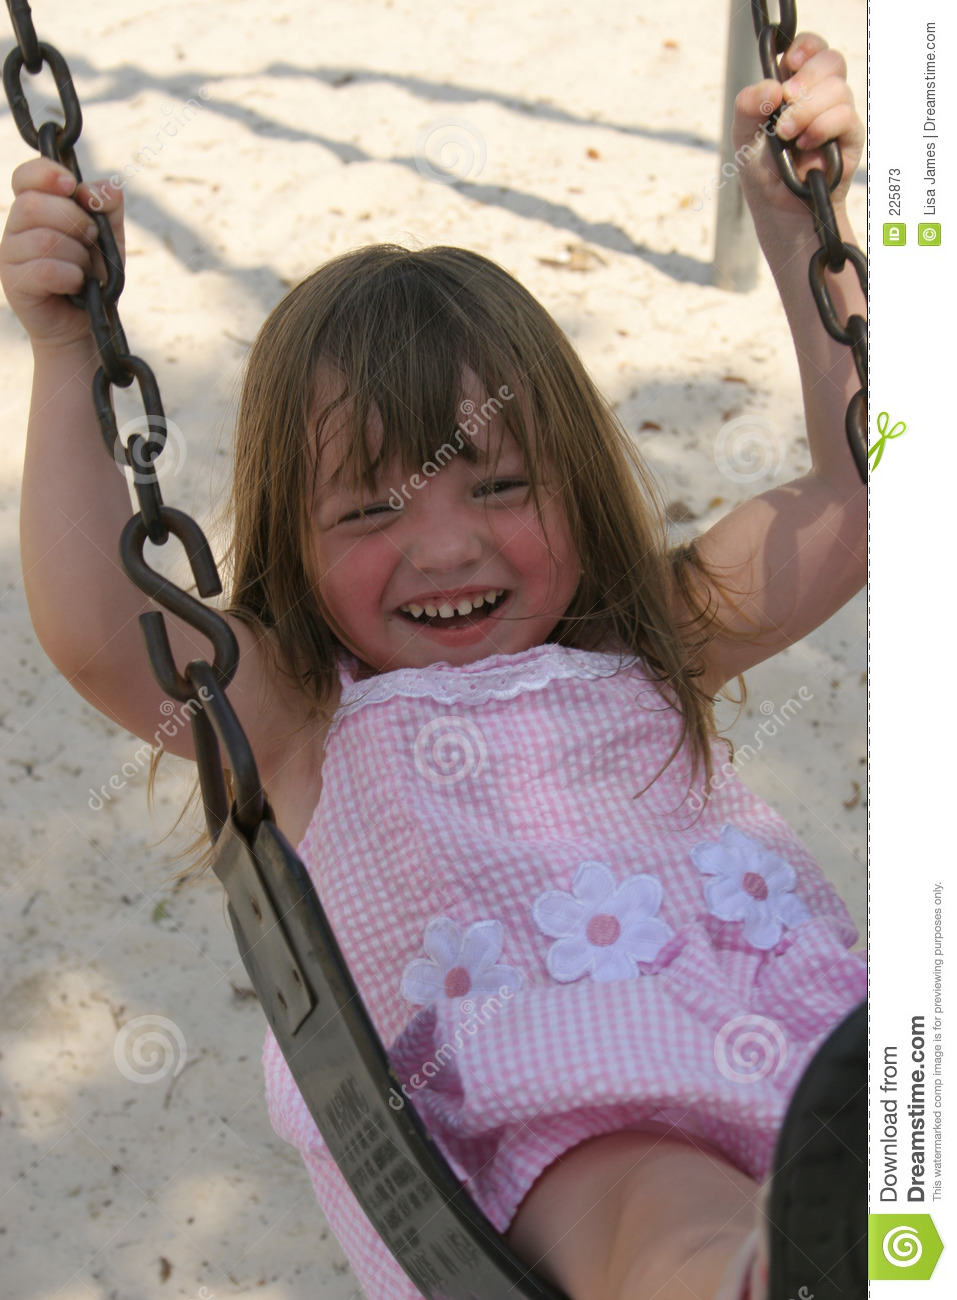 Girl on swing with smile